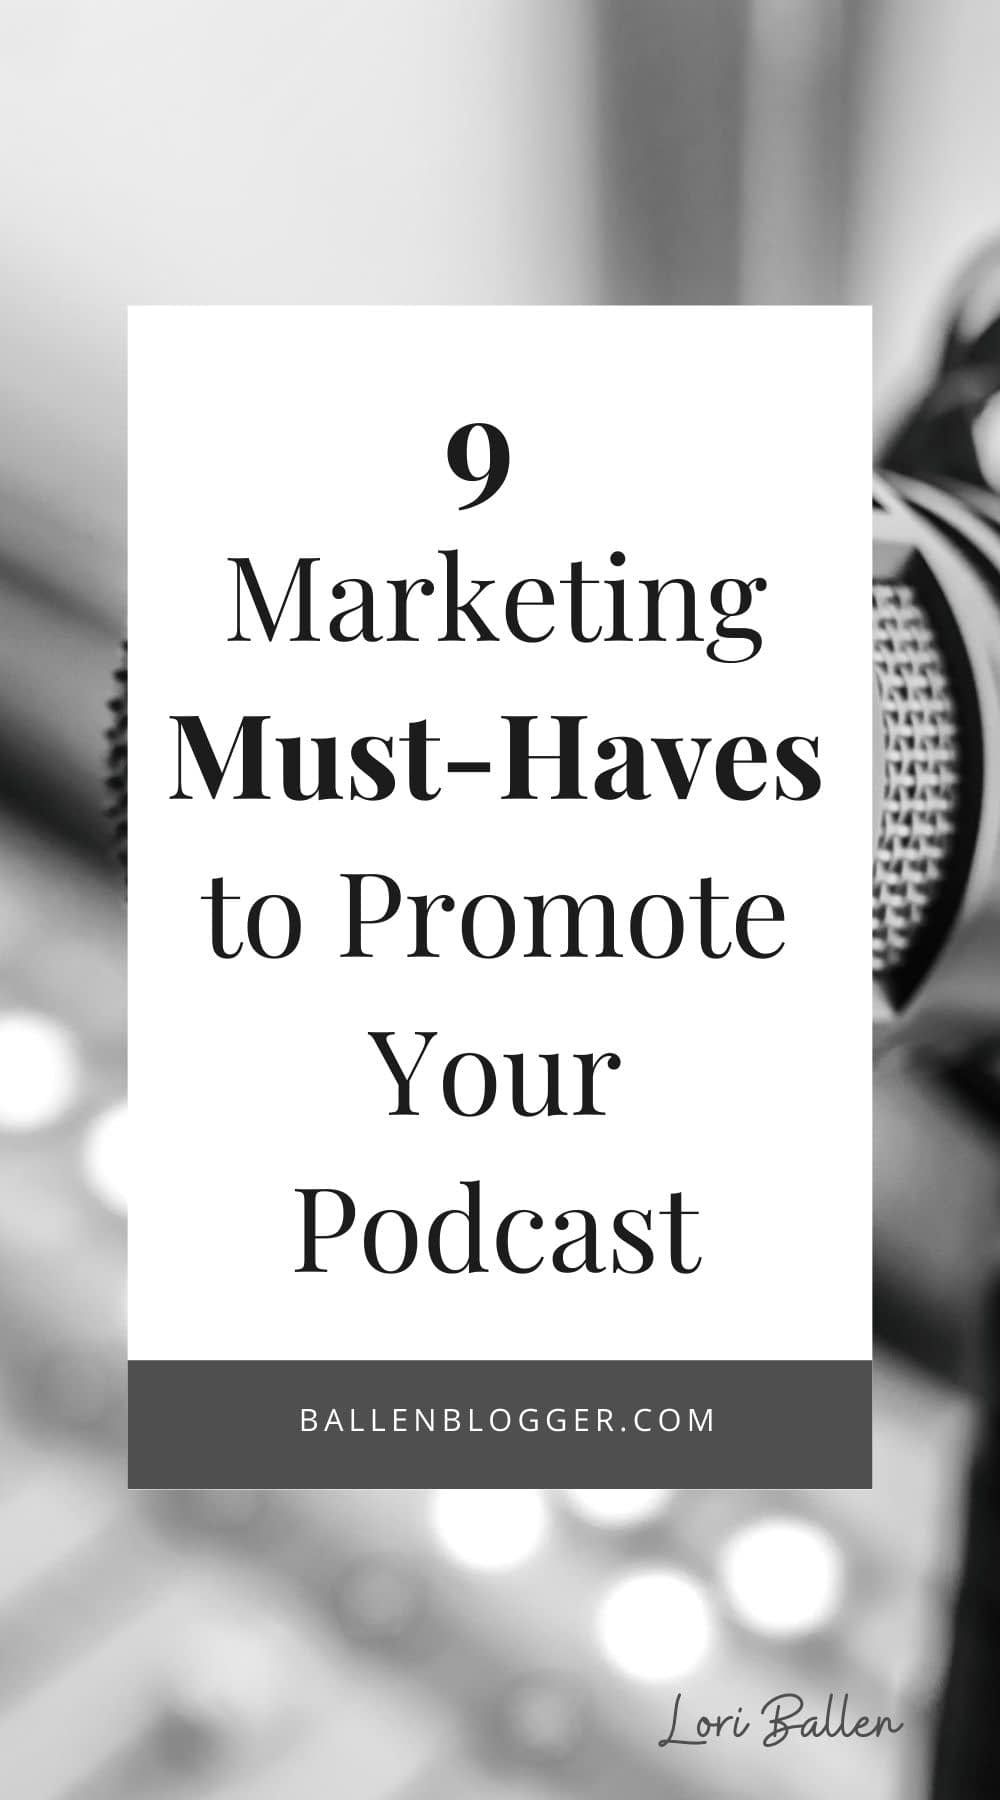 Good podcast marketing tactics will increase your business's online traffic and conversions. So, here are nine marketing must-haves to promote your podcast and maximize your returns.